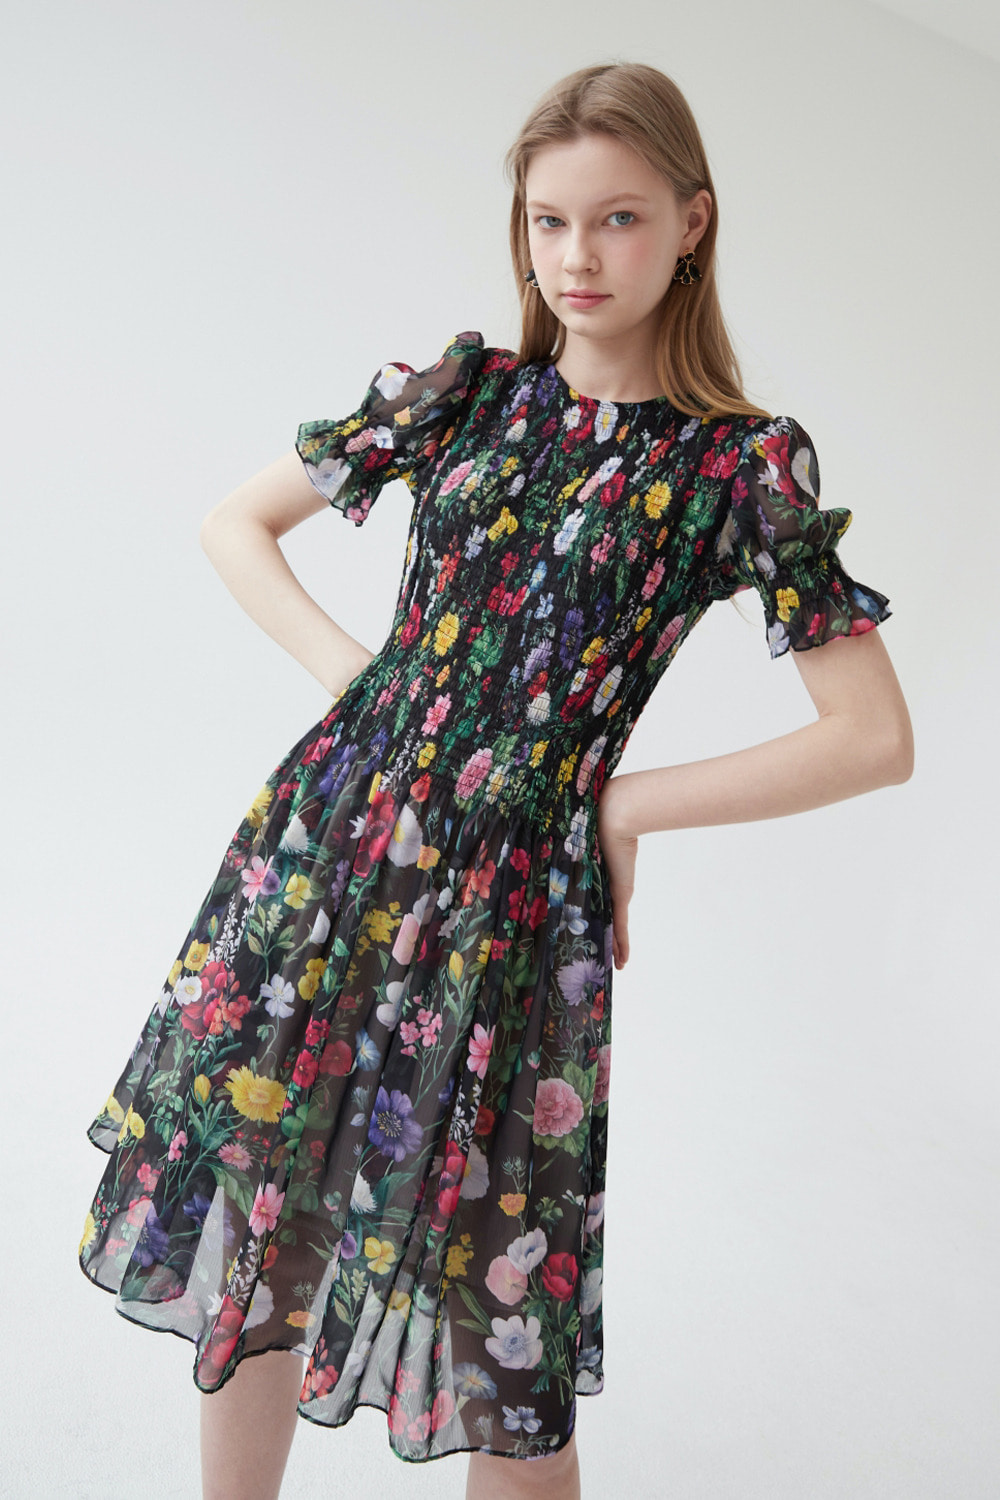 Flower garden elastic dress (Black)